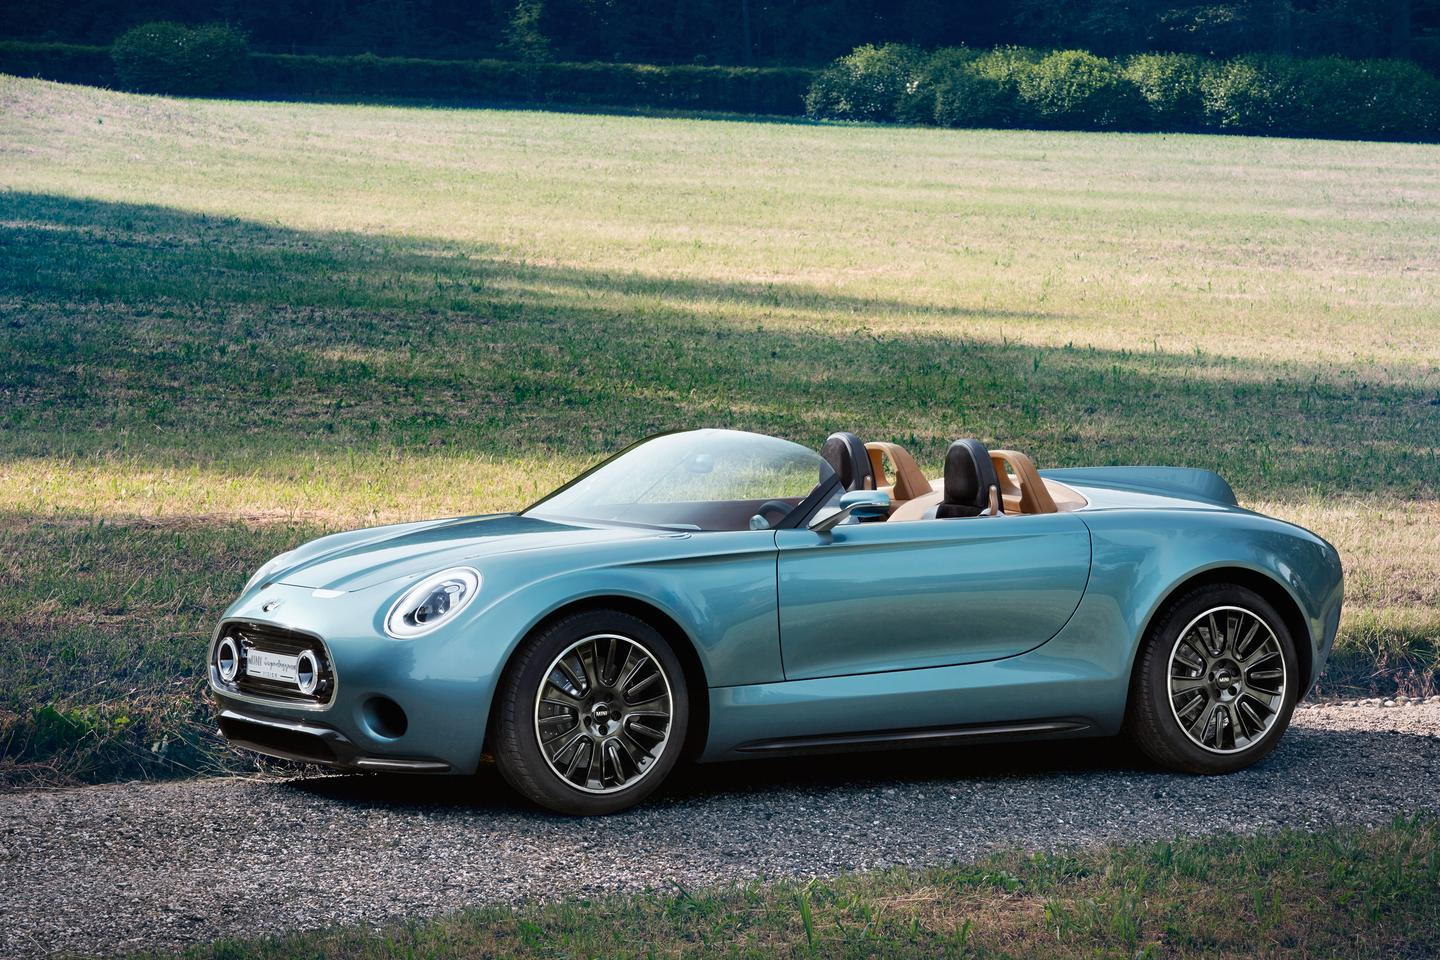 By using hand formed aluminum sheets Carrozzeria has produced a wonderfully sculpted, shortish roadster that evokes a number of design influences and eras